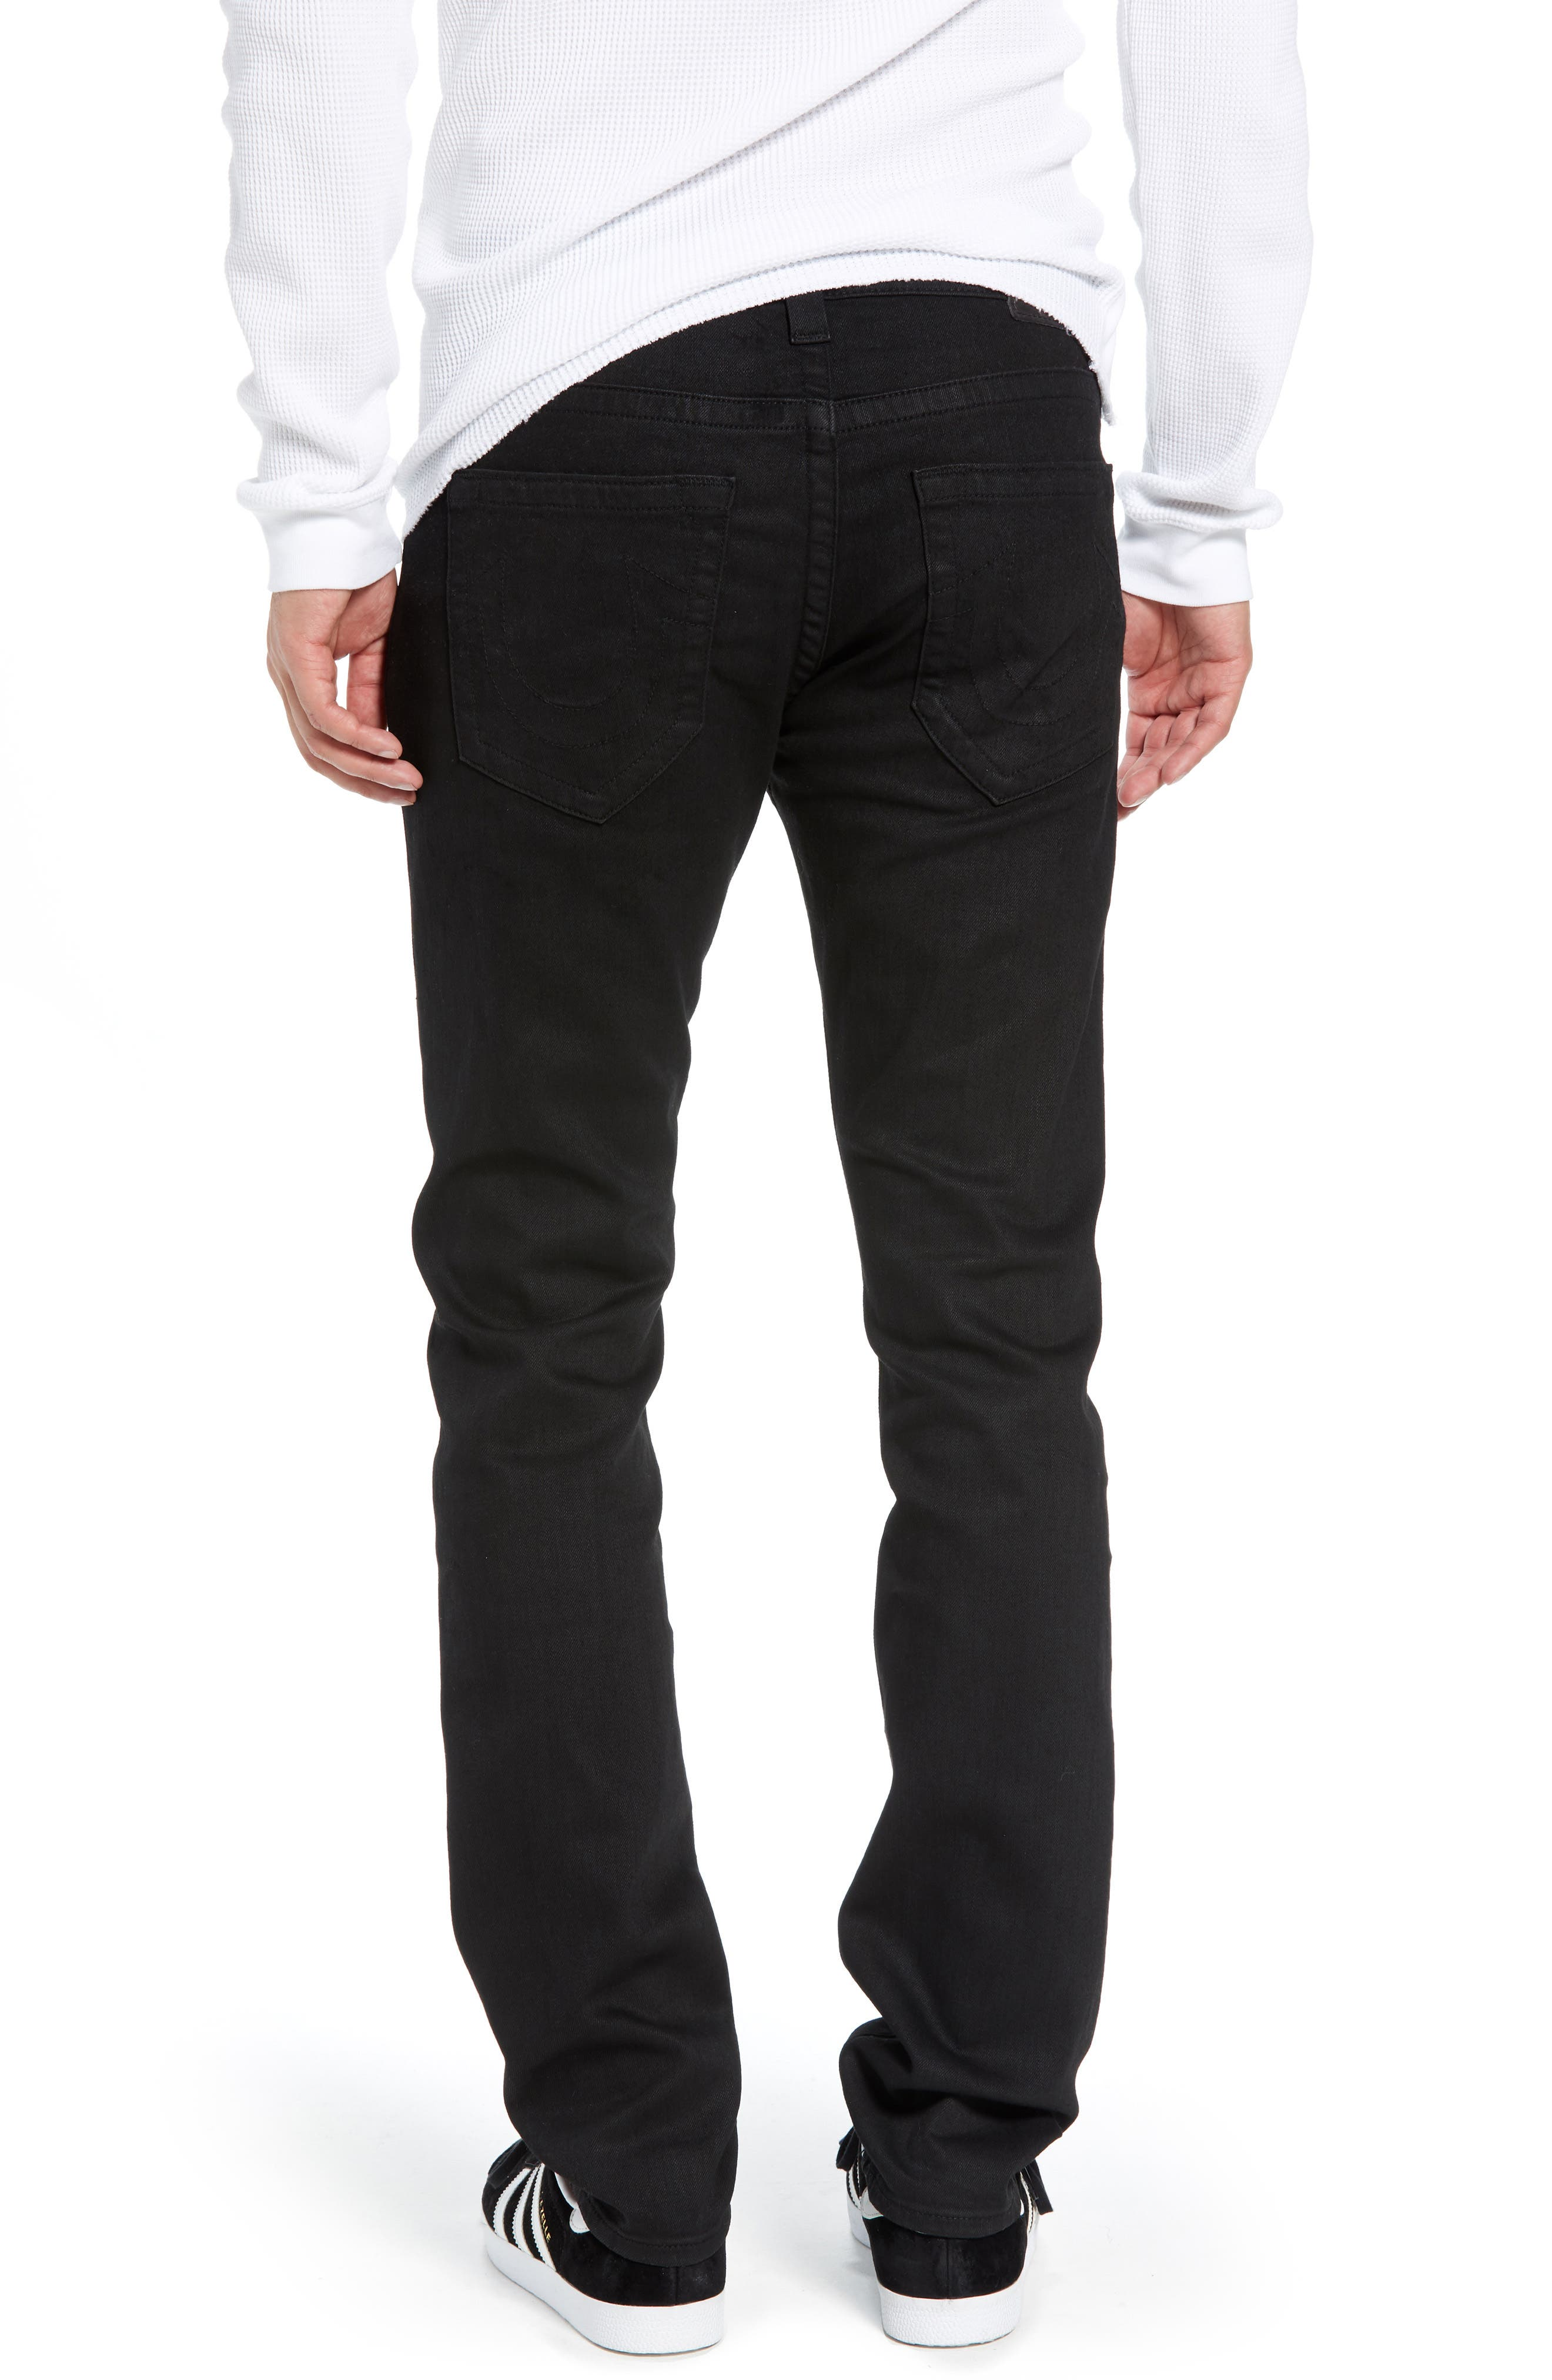 Rocco Skinny Fit Jeans,                             Alternate thumbnail 2, color,                             MIDNIGHT BLACK COATED